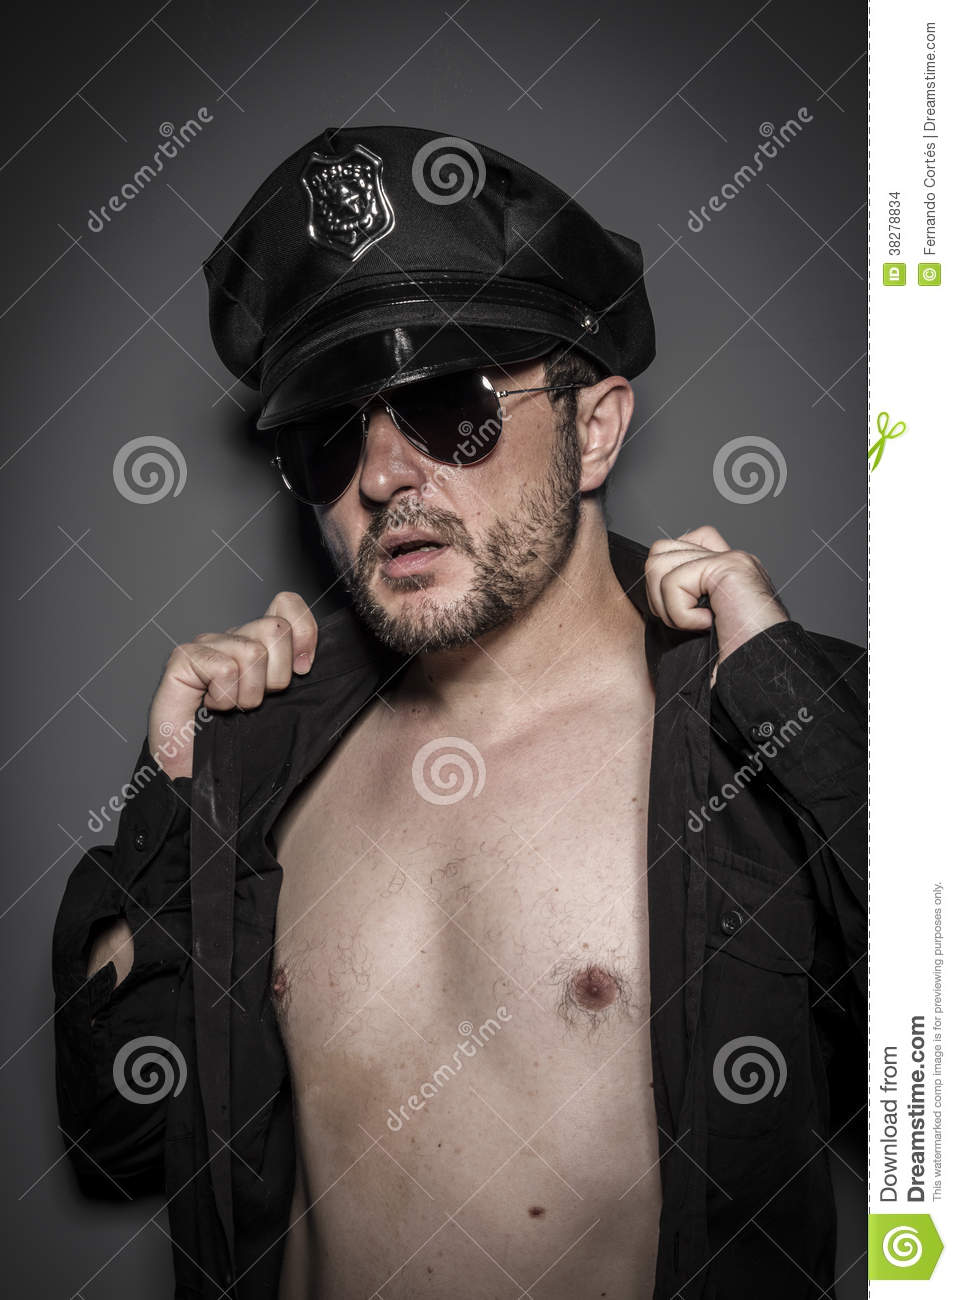 Gay Sexy Download throughout gay, good looking policeman, police stock photo - image: 38278834